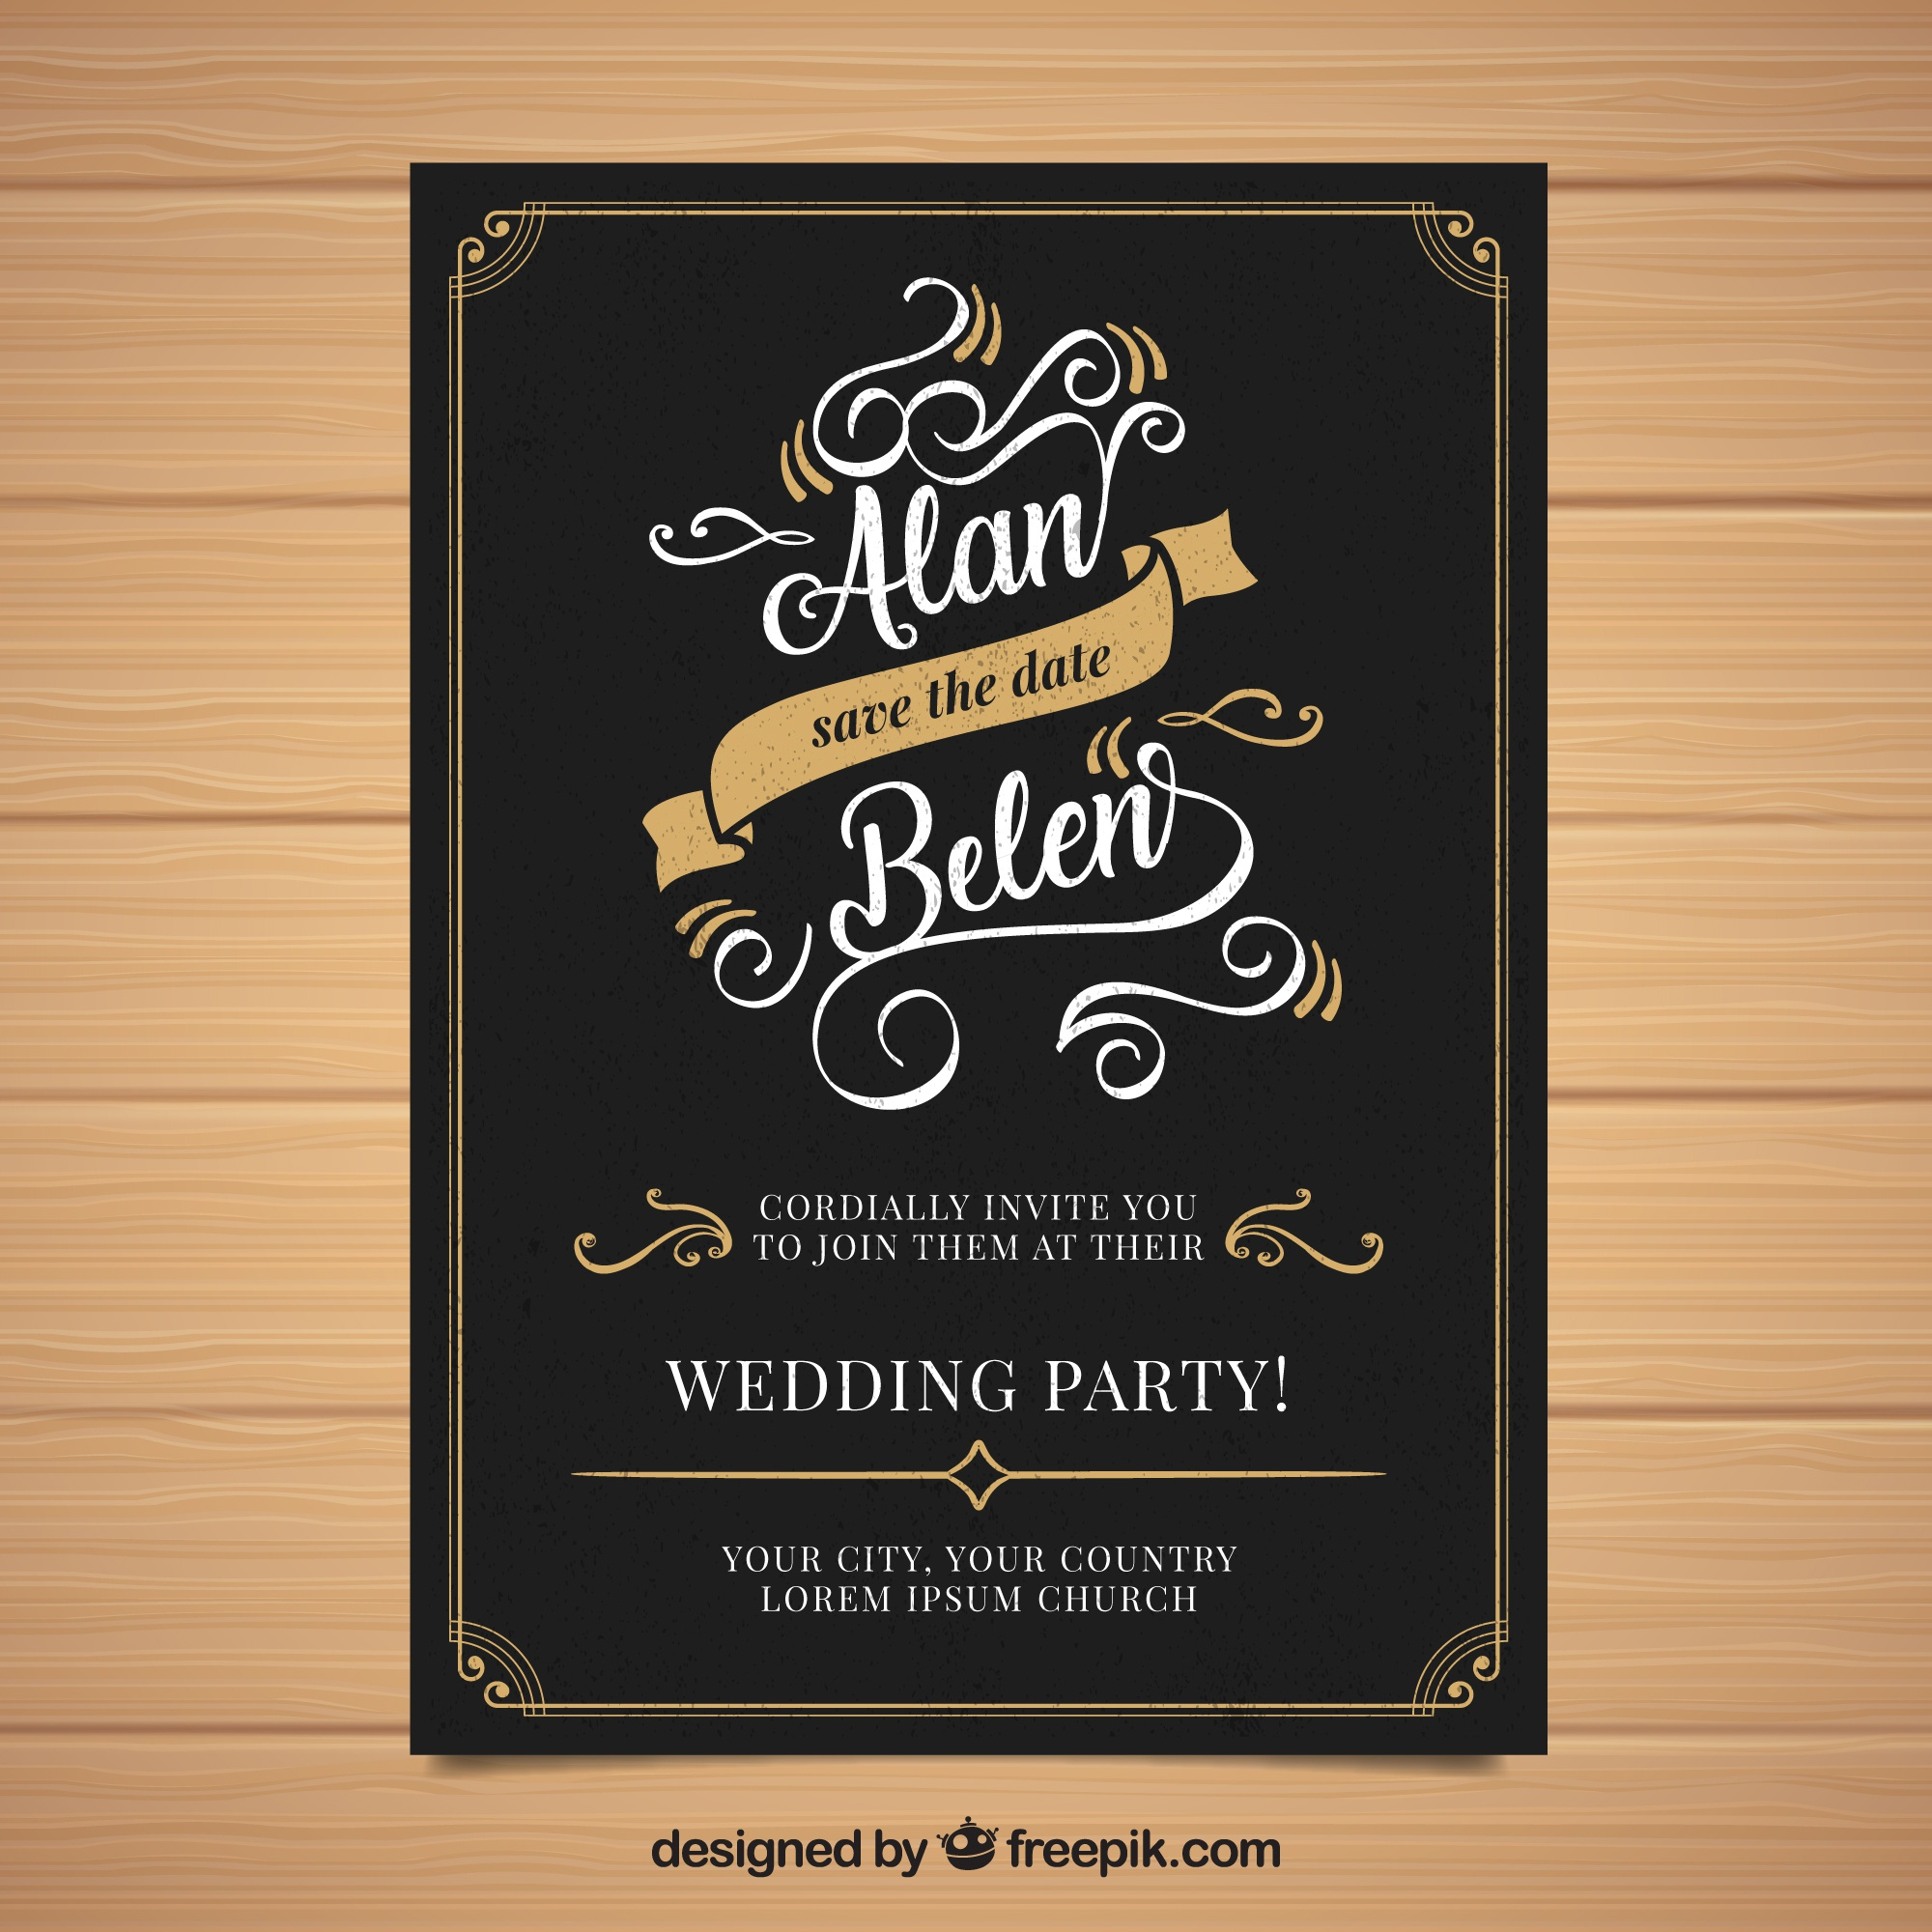 Wedding invitation with ornaments in vintage style